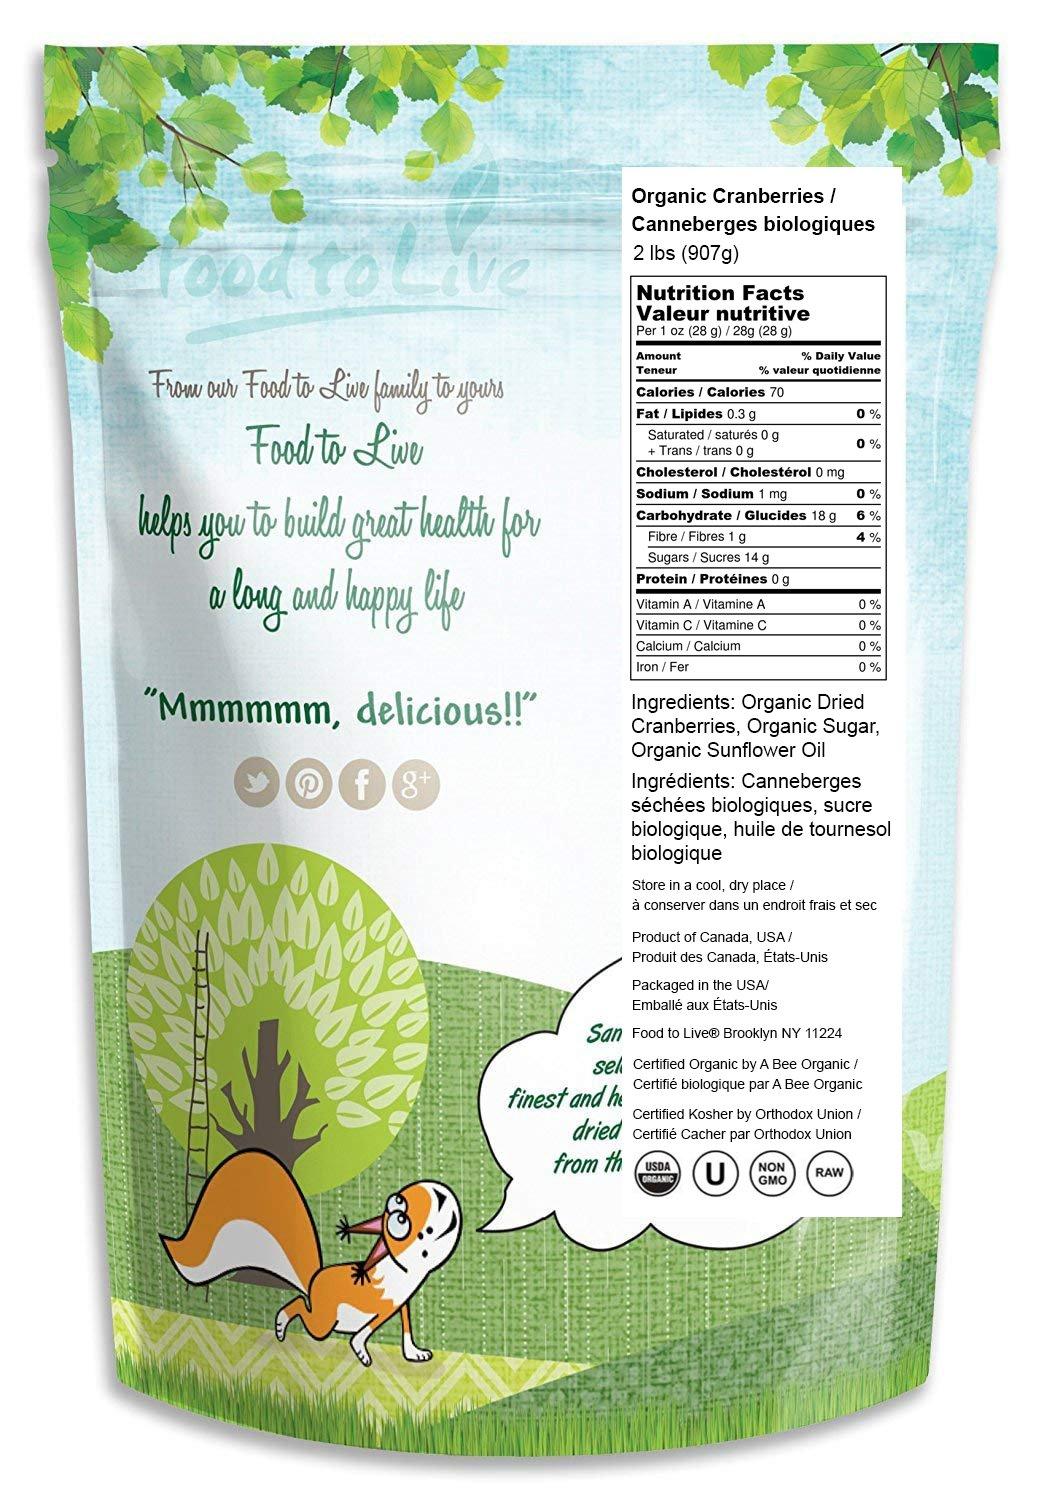 Organic Dried Cranberries, 2 Pounds — Non-GMO, Kosher, Unsulfured, Bulk by Food to Live (Image #2)